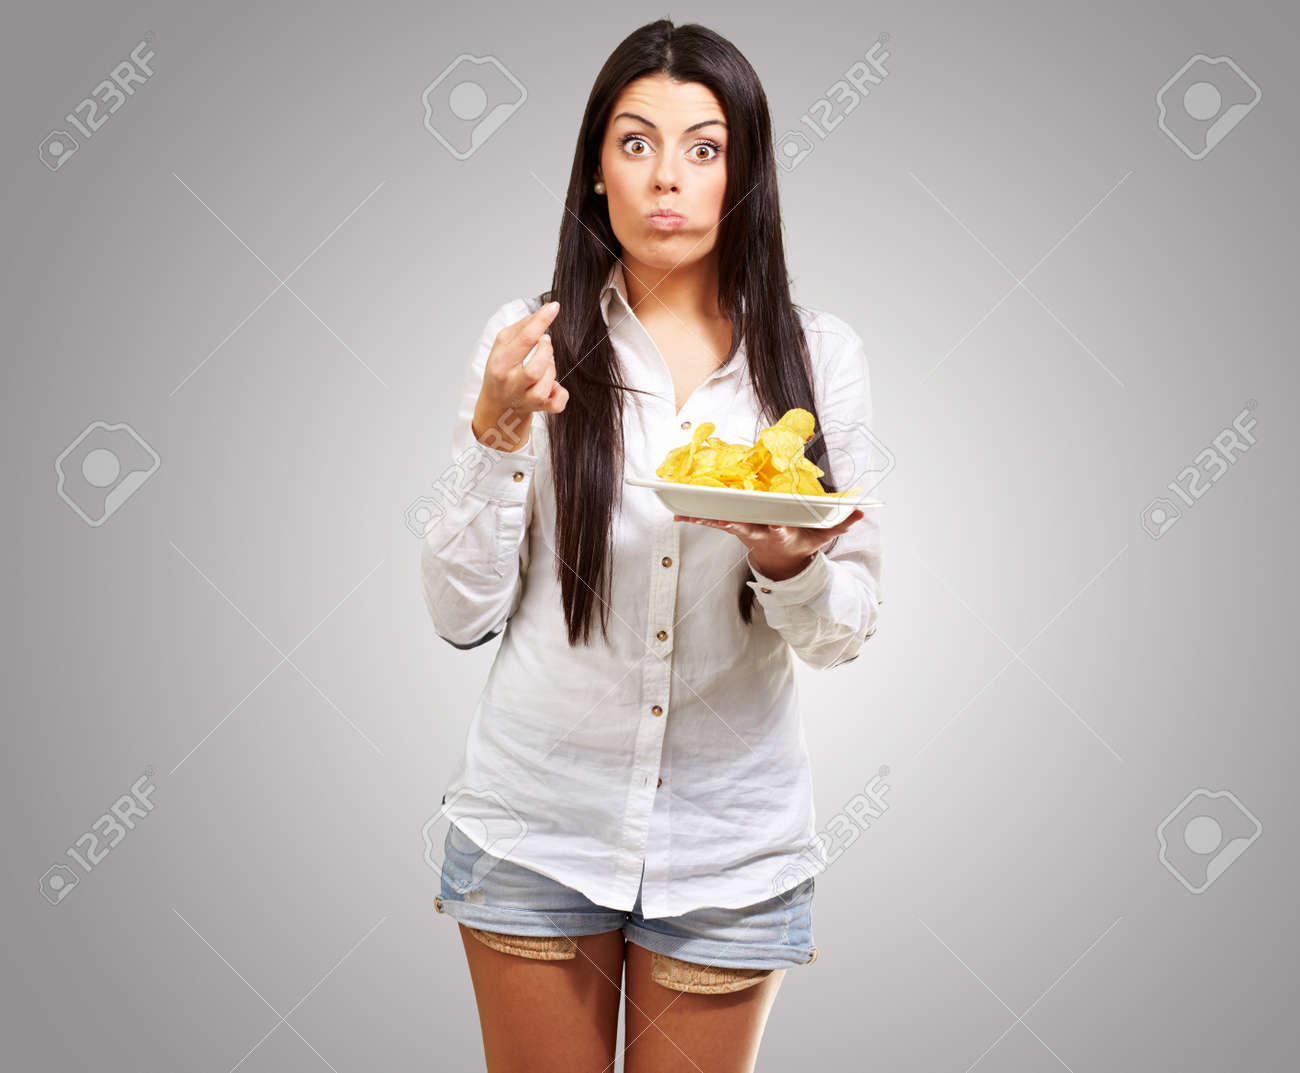 young woman eating potatoe chips against a grey background Stock Photo - 13280263